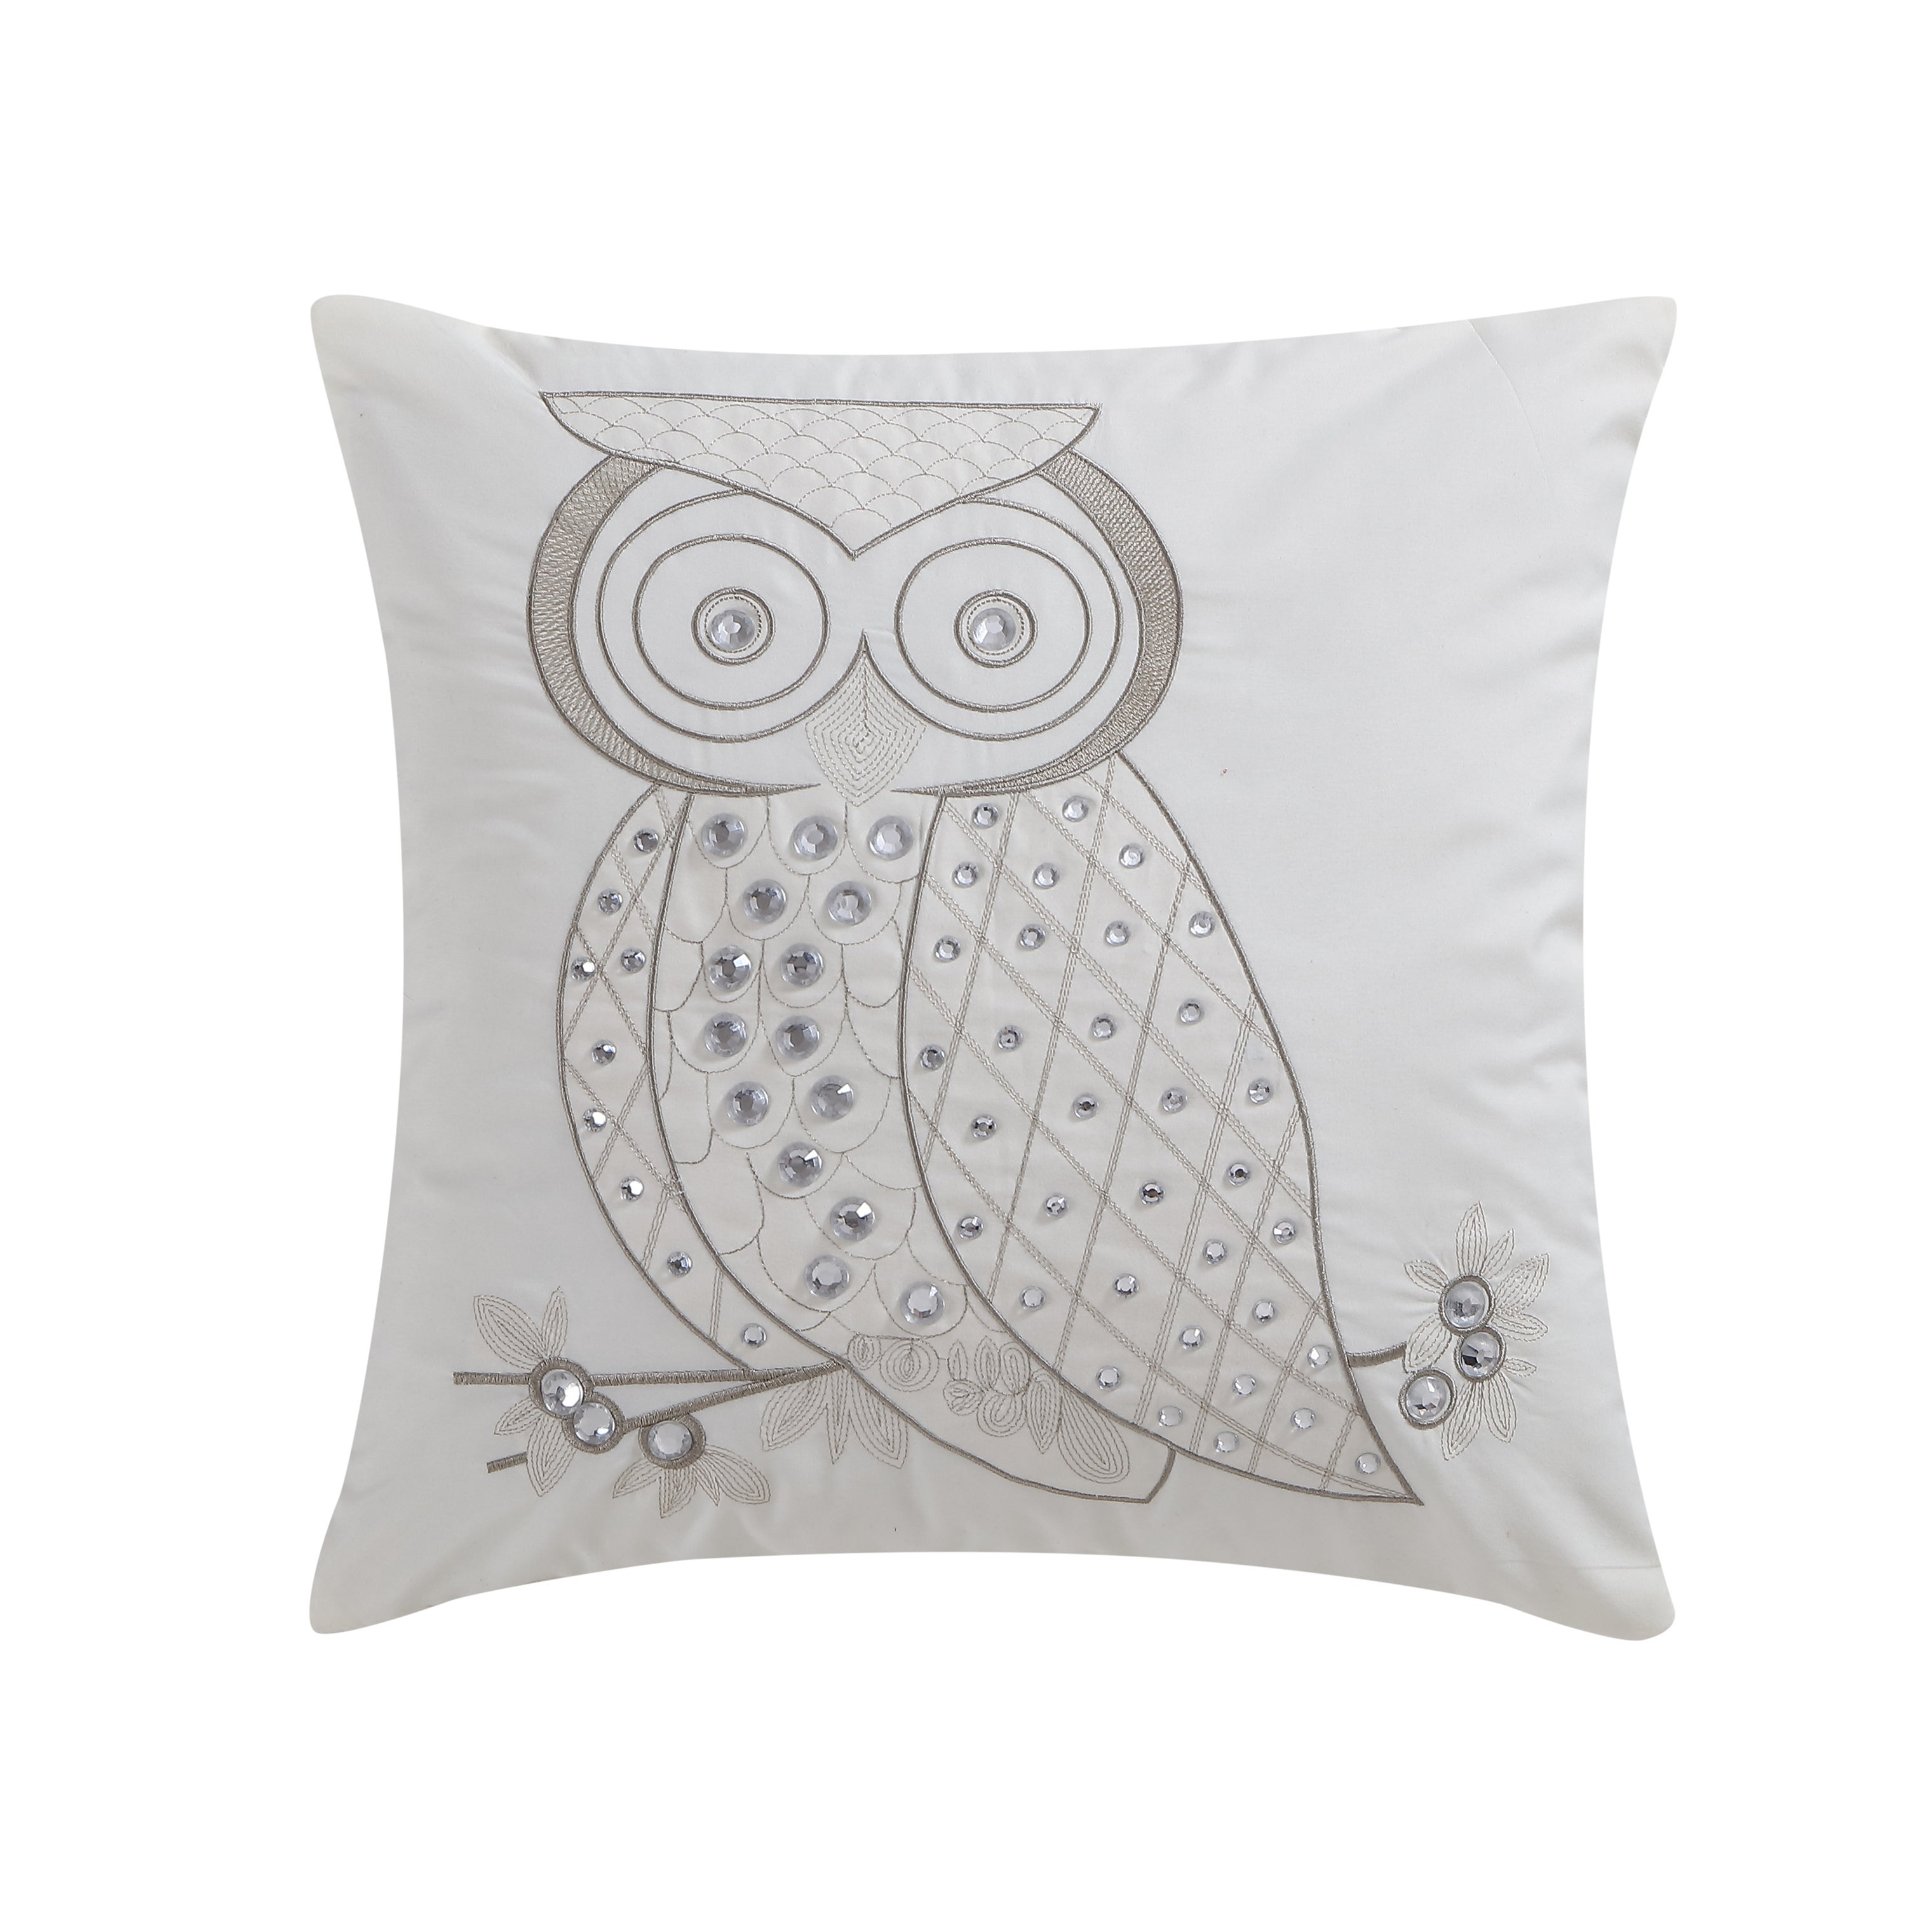 VCNY Home Owl Rhinestone Throw Pillow (Ivory)